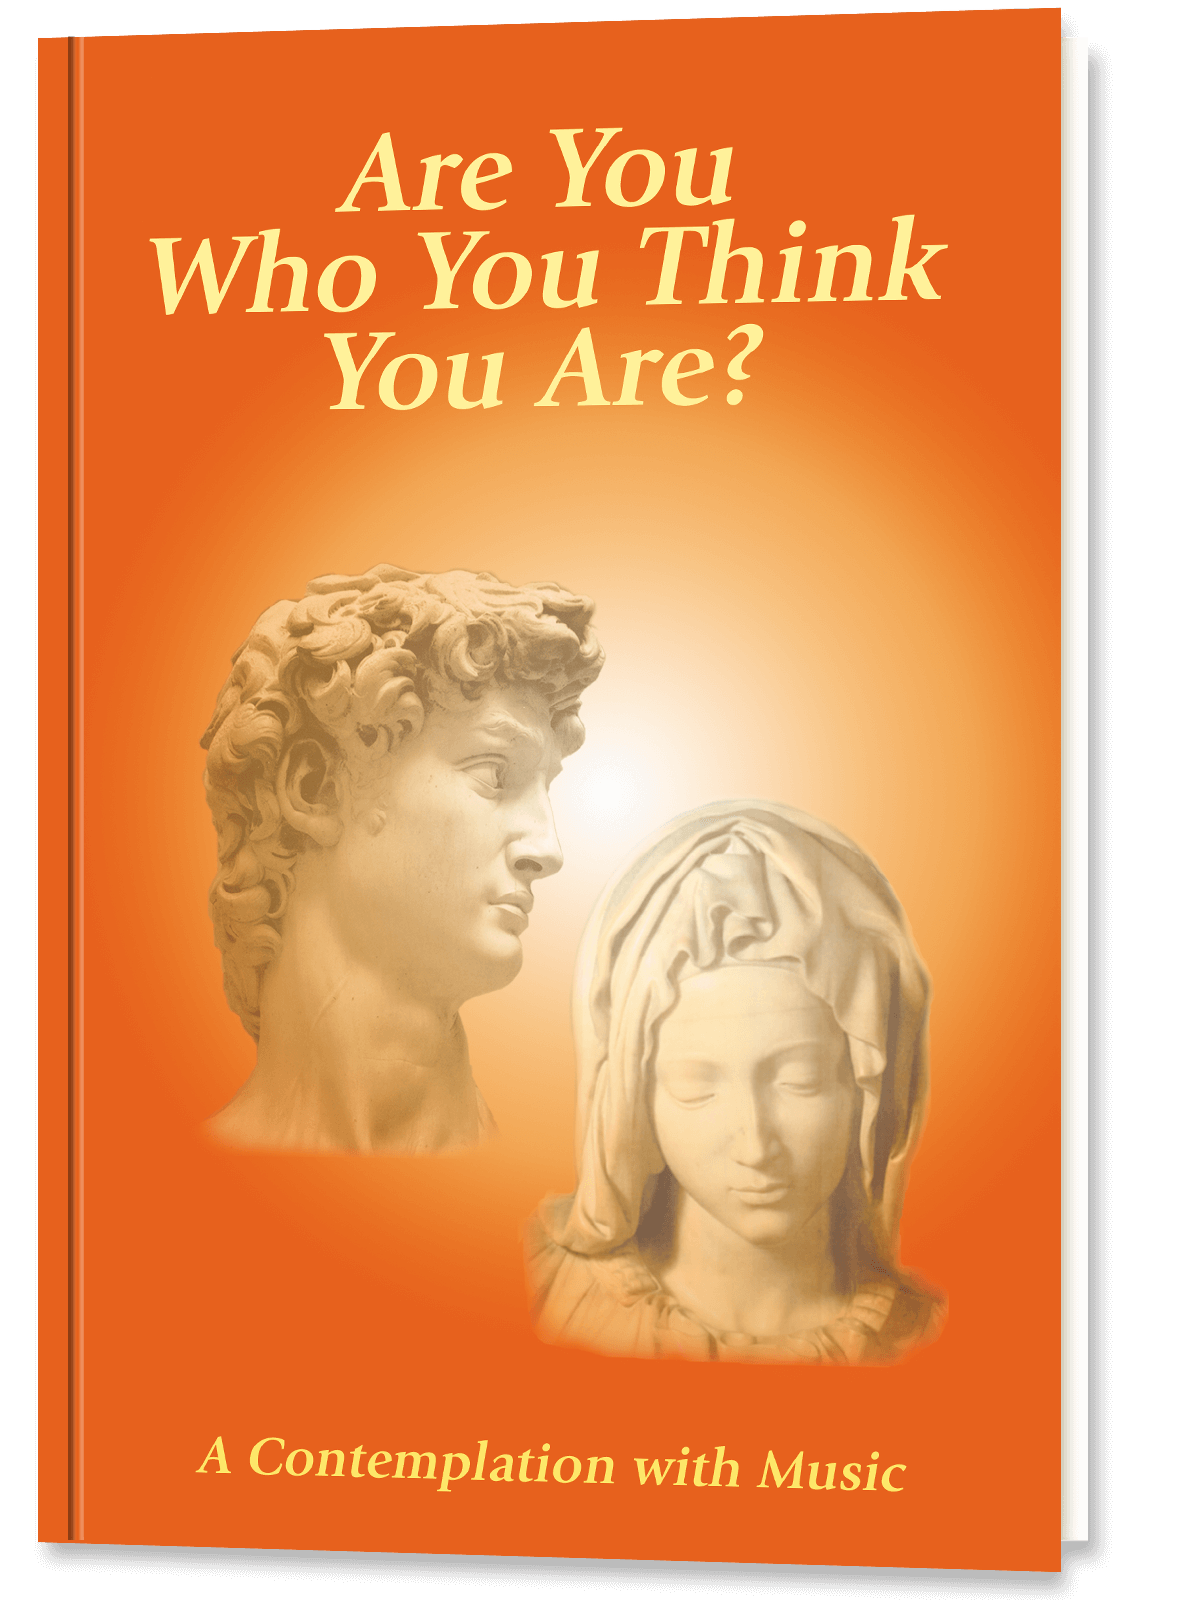 Are You Who You Think You Are?